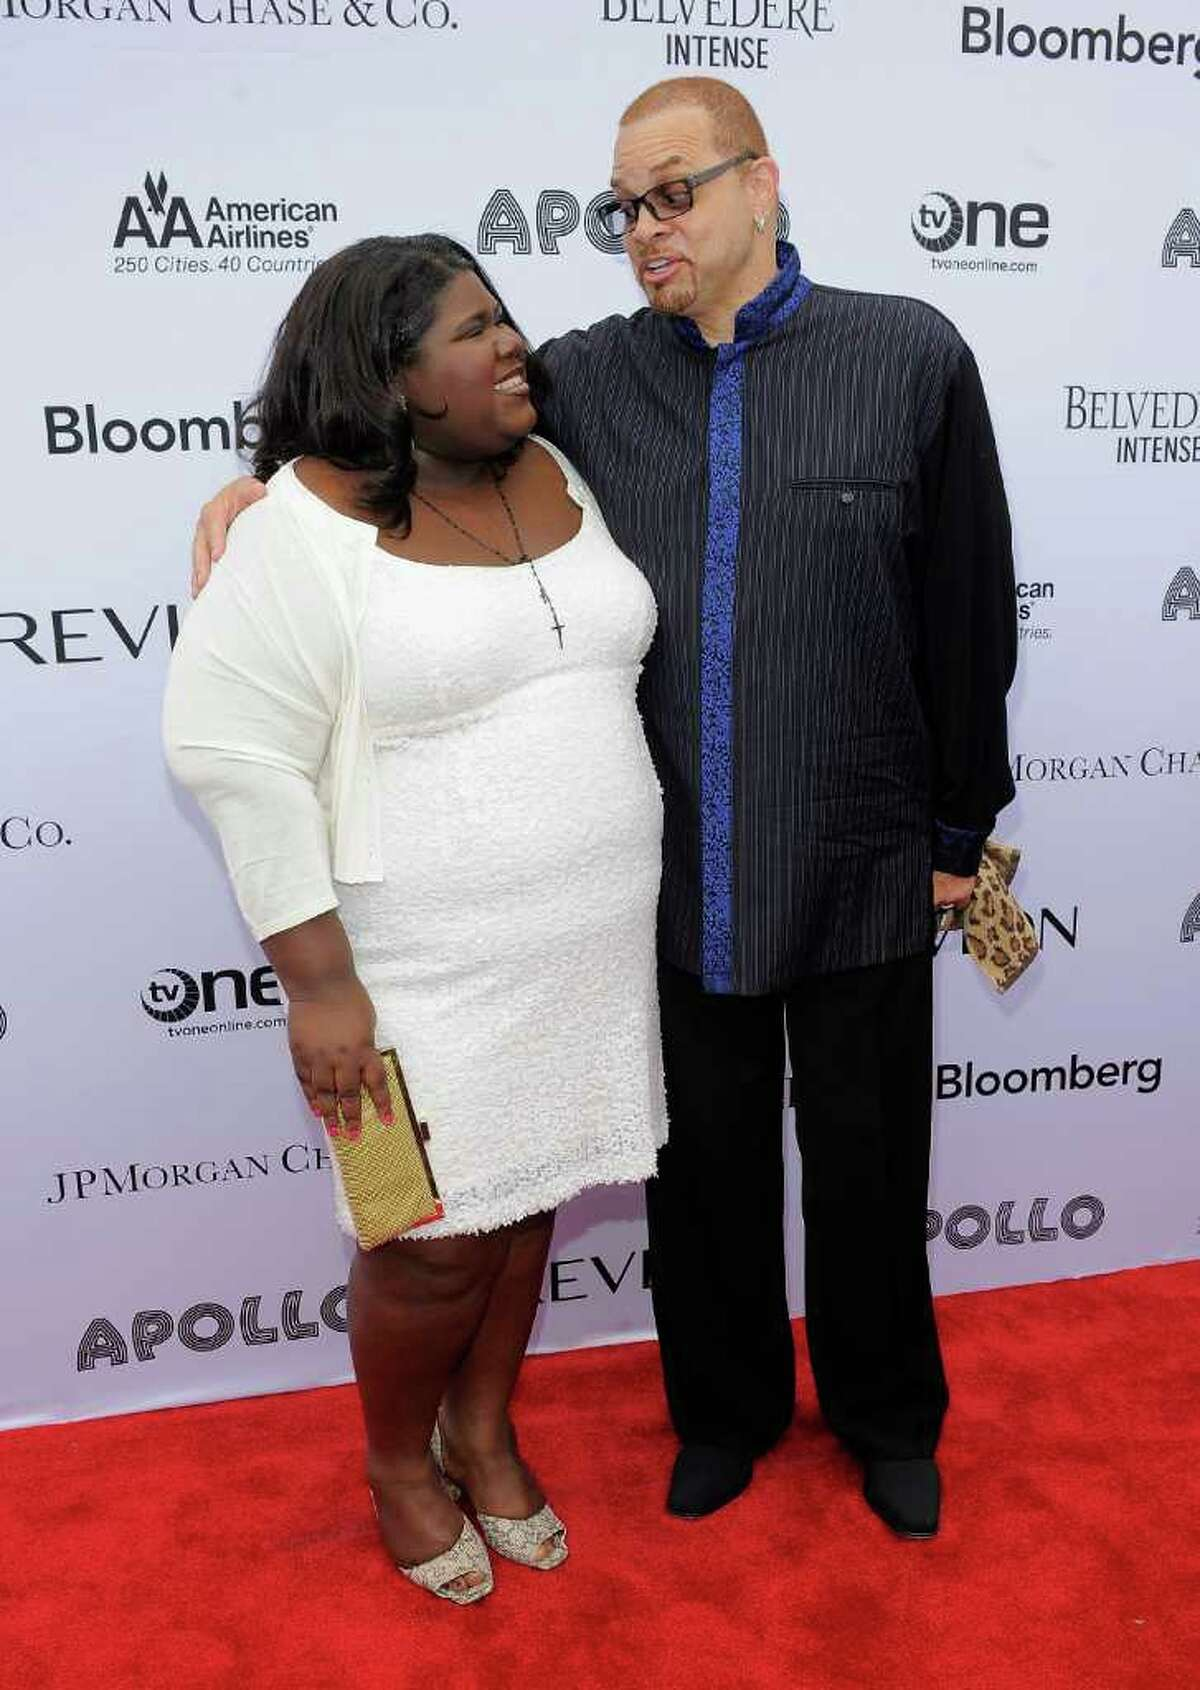 Actress Gabourey Sidibe and actor/comedian Sinbad attend the 2011 Apollo Theater Spring Gala at The Apollo Theater in New York City.